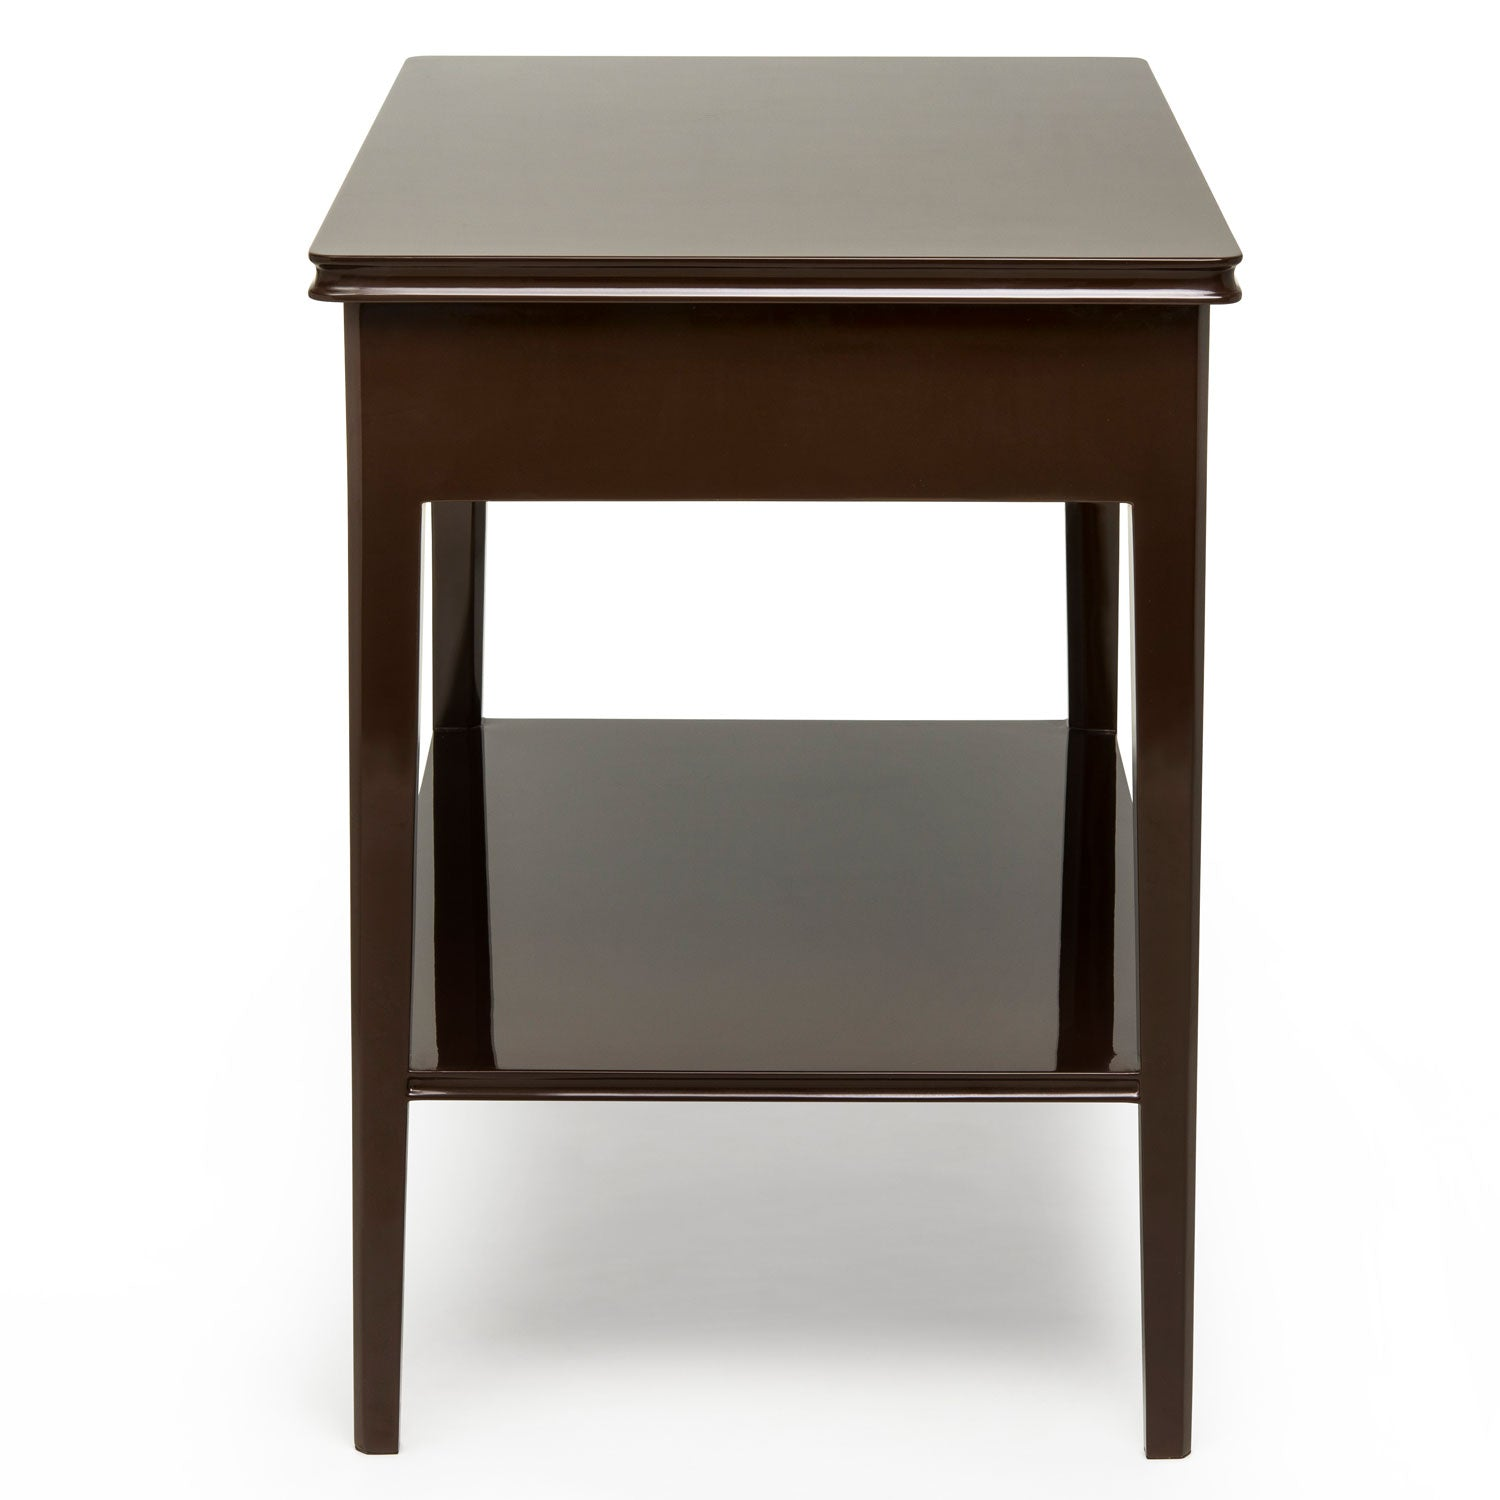 Large Bedside Table - Brown / Kelly Green - Ex Display